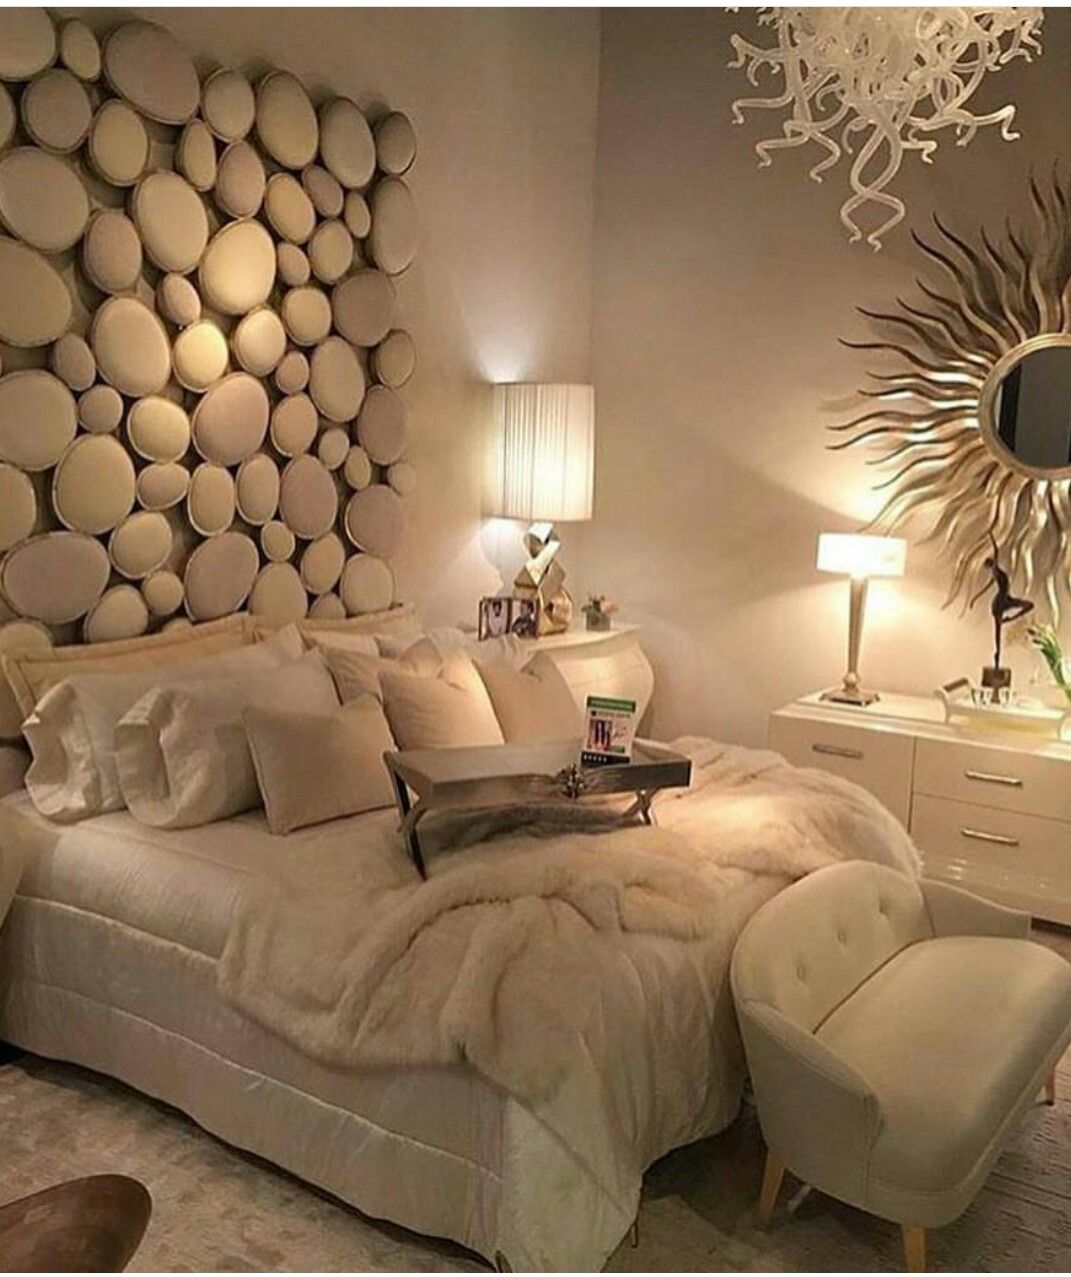 Pin de Edit en decoración de casa | Pinterest | Revestimiento ...